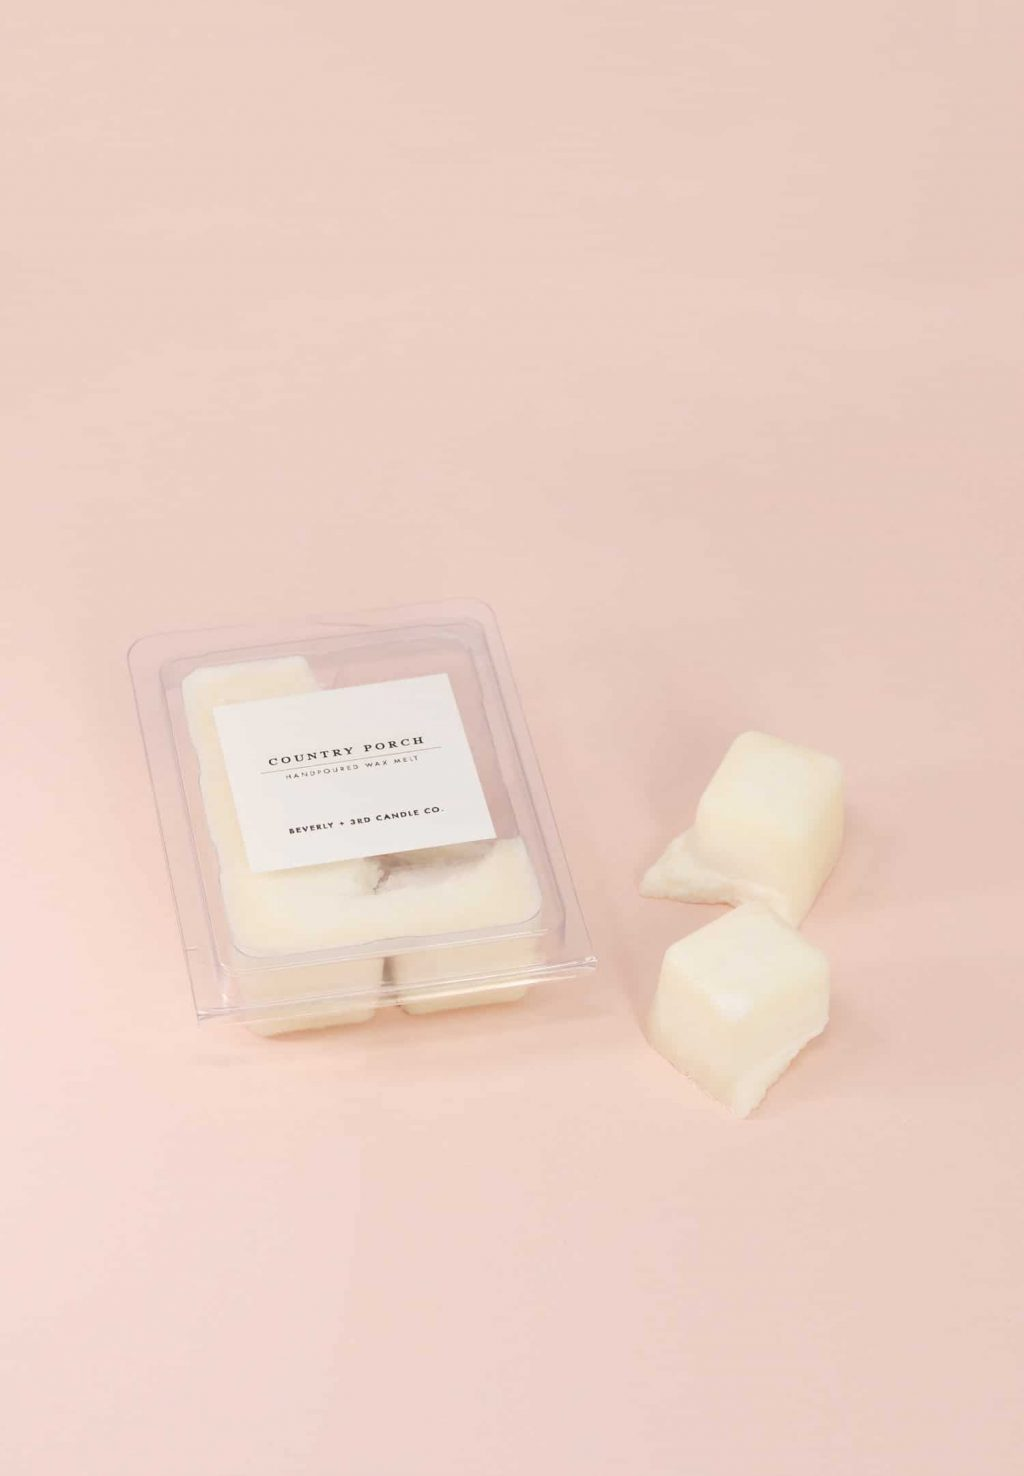 COUNTRY PORCH Soy Wax Melts | Scented Soy Tarts, Soy Candle Melt, Scented Wax Cubes | Wholesale, Bulk Order